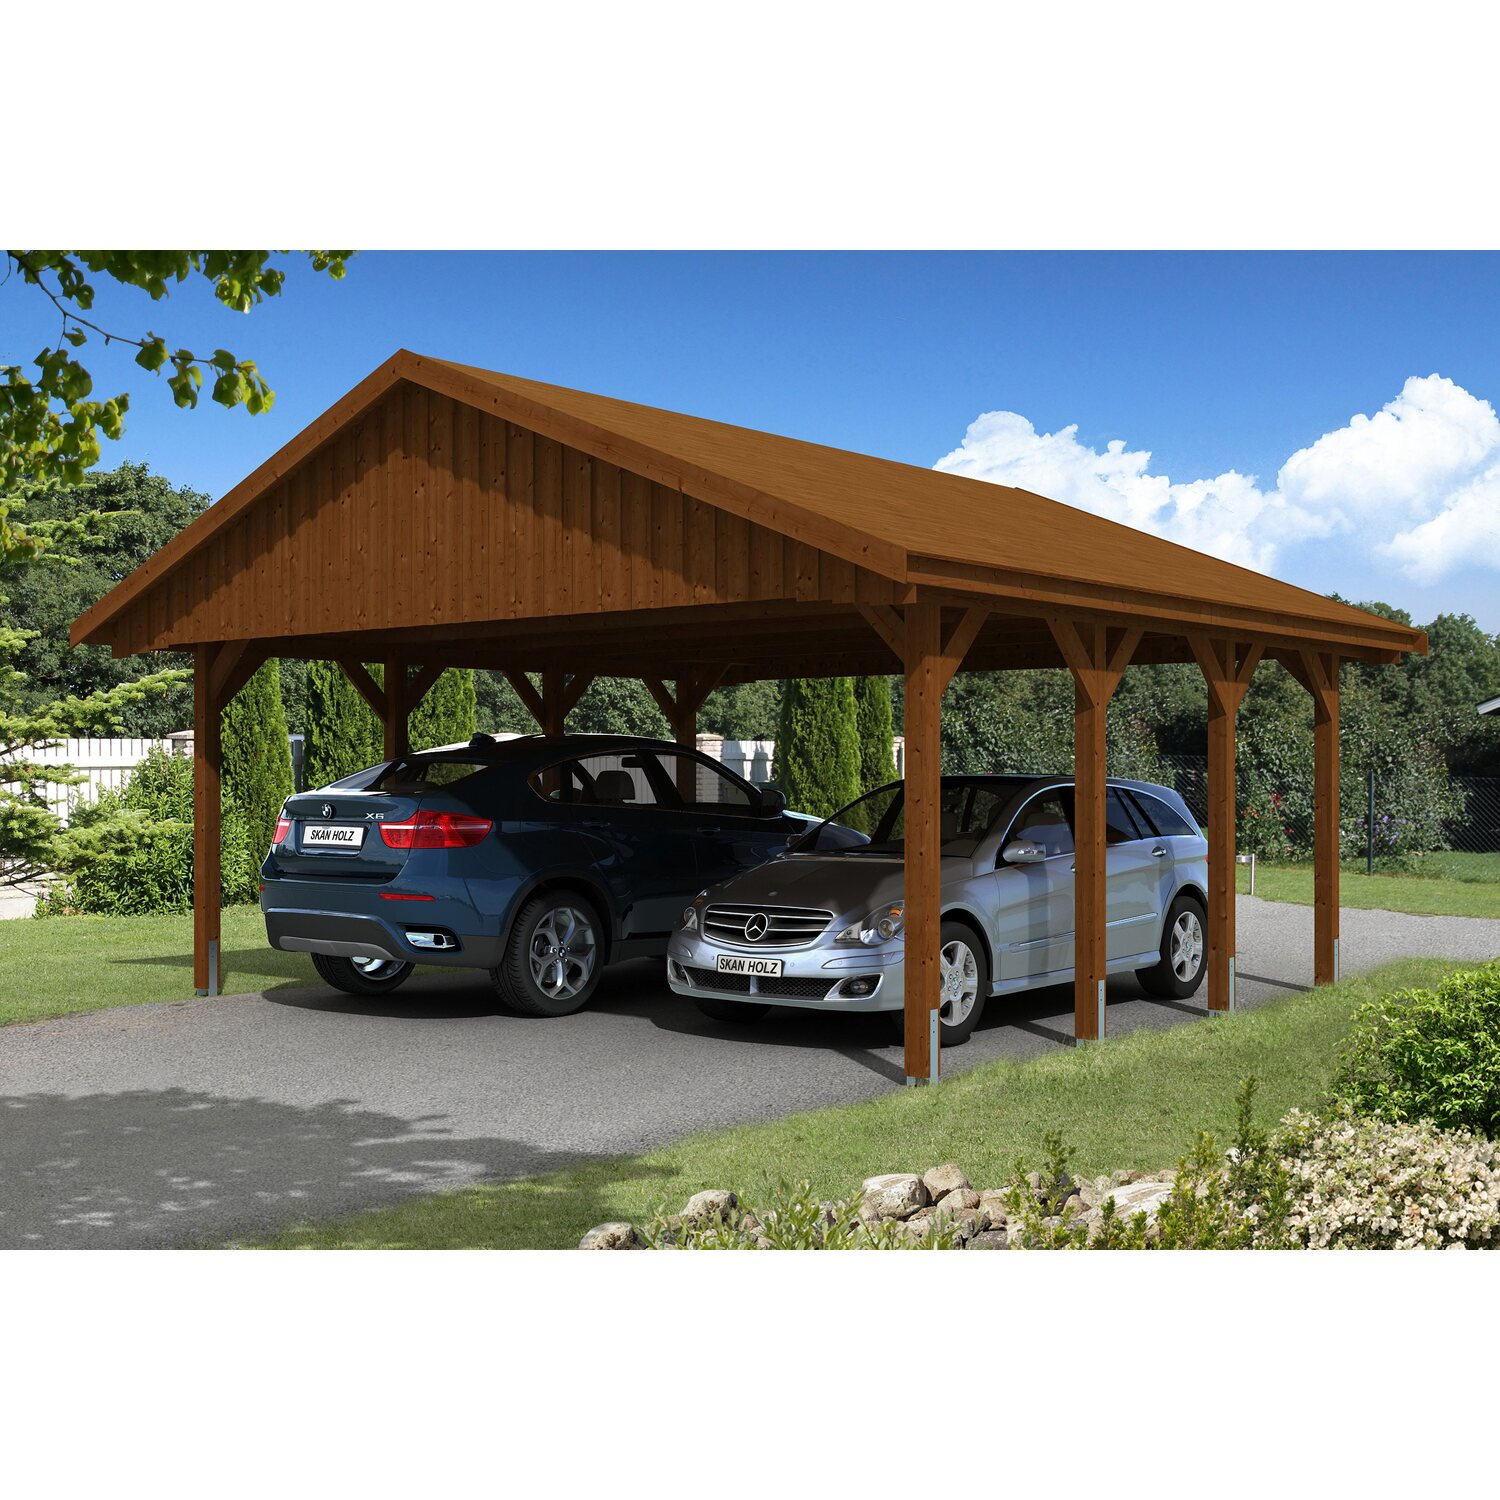 skan holz satteldach carport sauerland 620 cm x 600 cm nussbaum kaufen bei obi. Black Bedroom Furniture Sets. Home Design Ideas